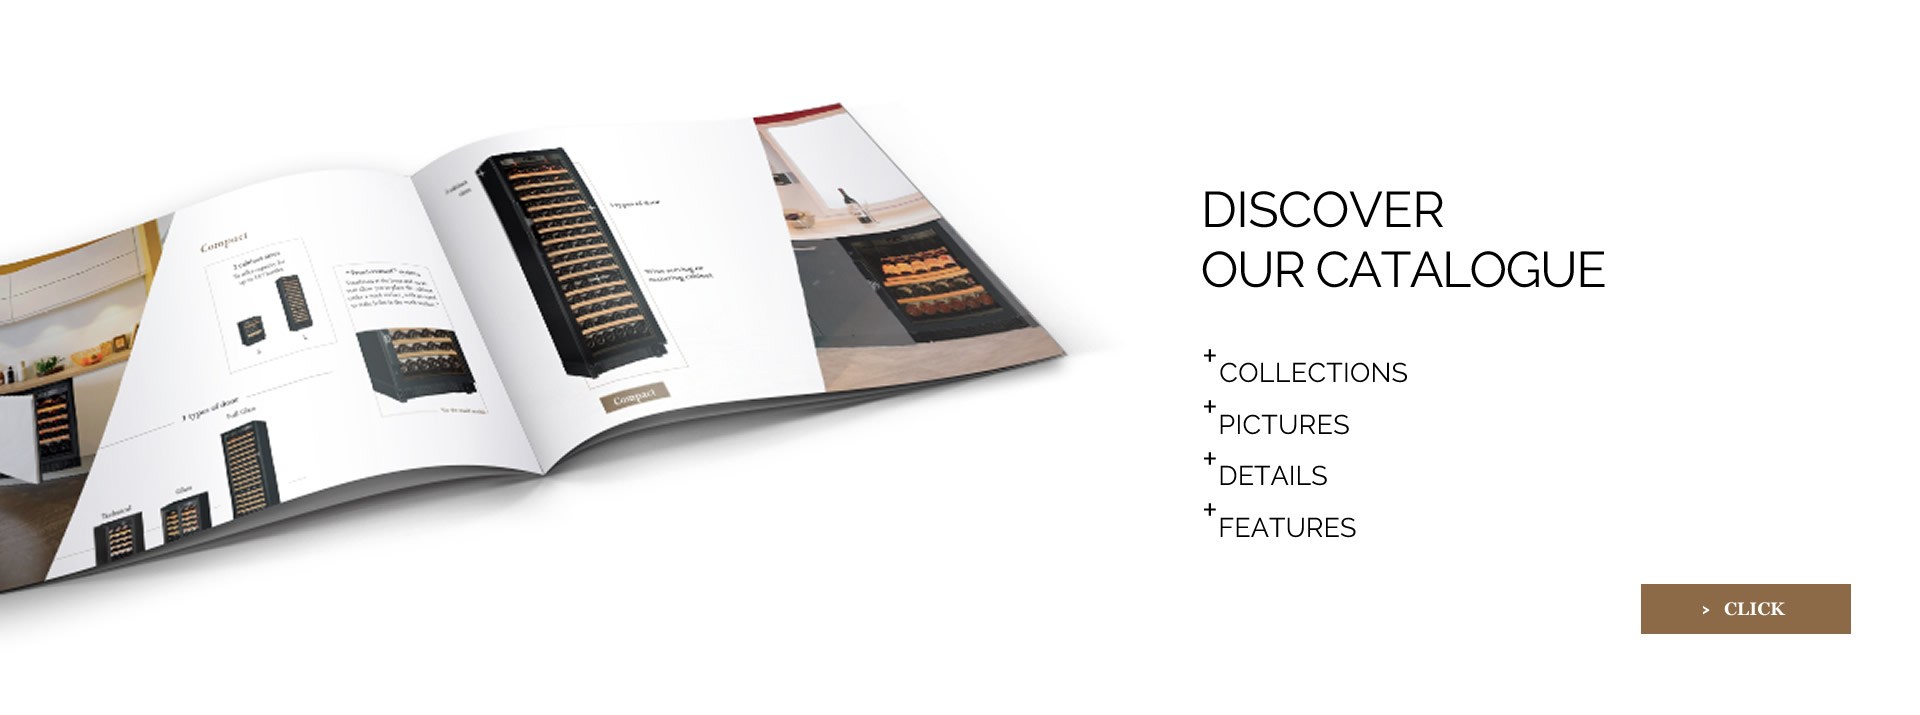 [image] Discover EuroCave interactive product catalog.